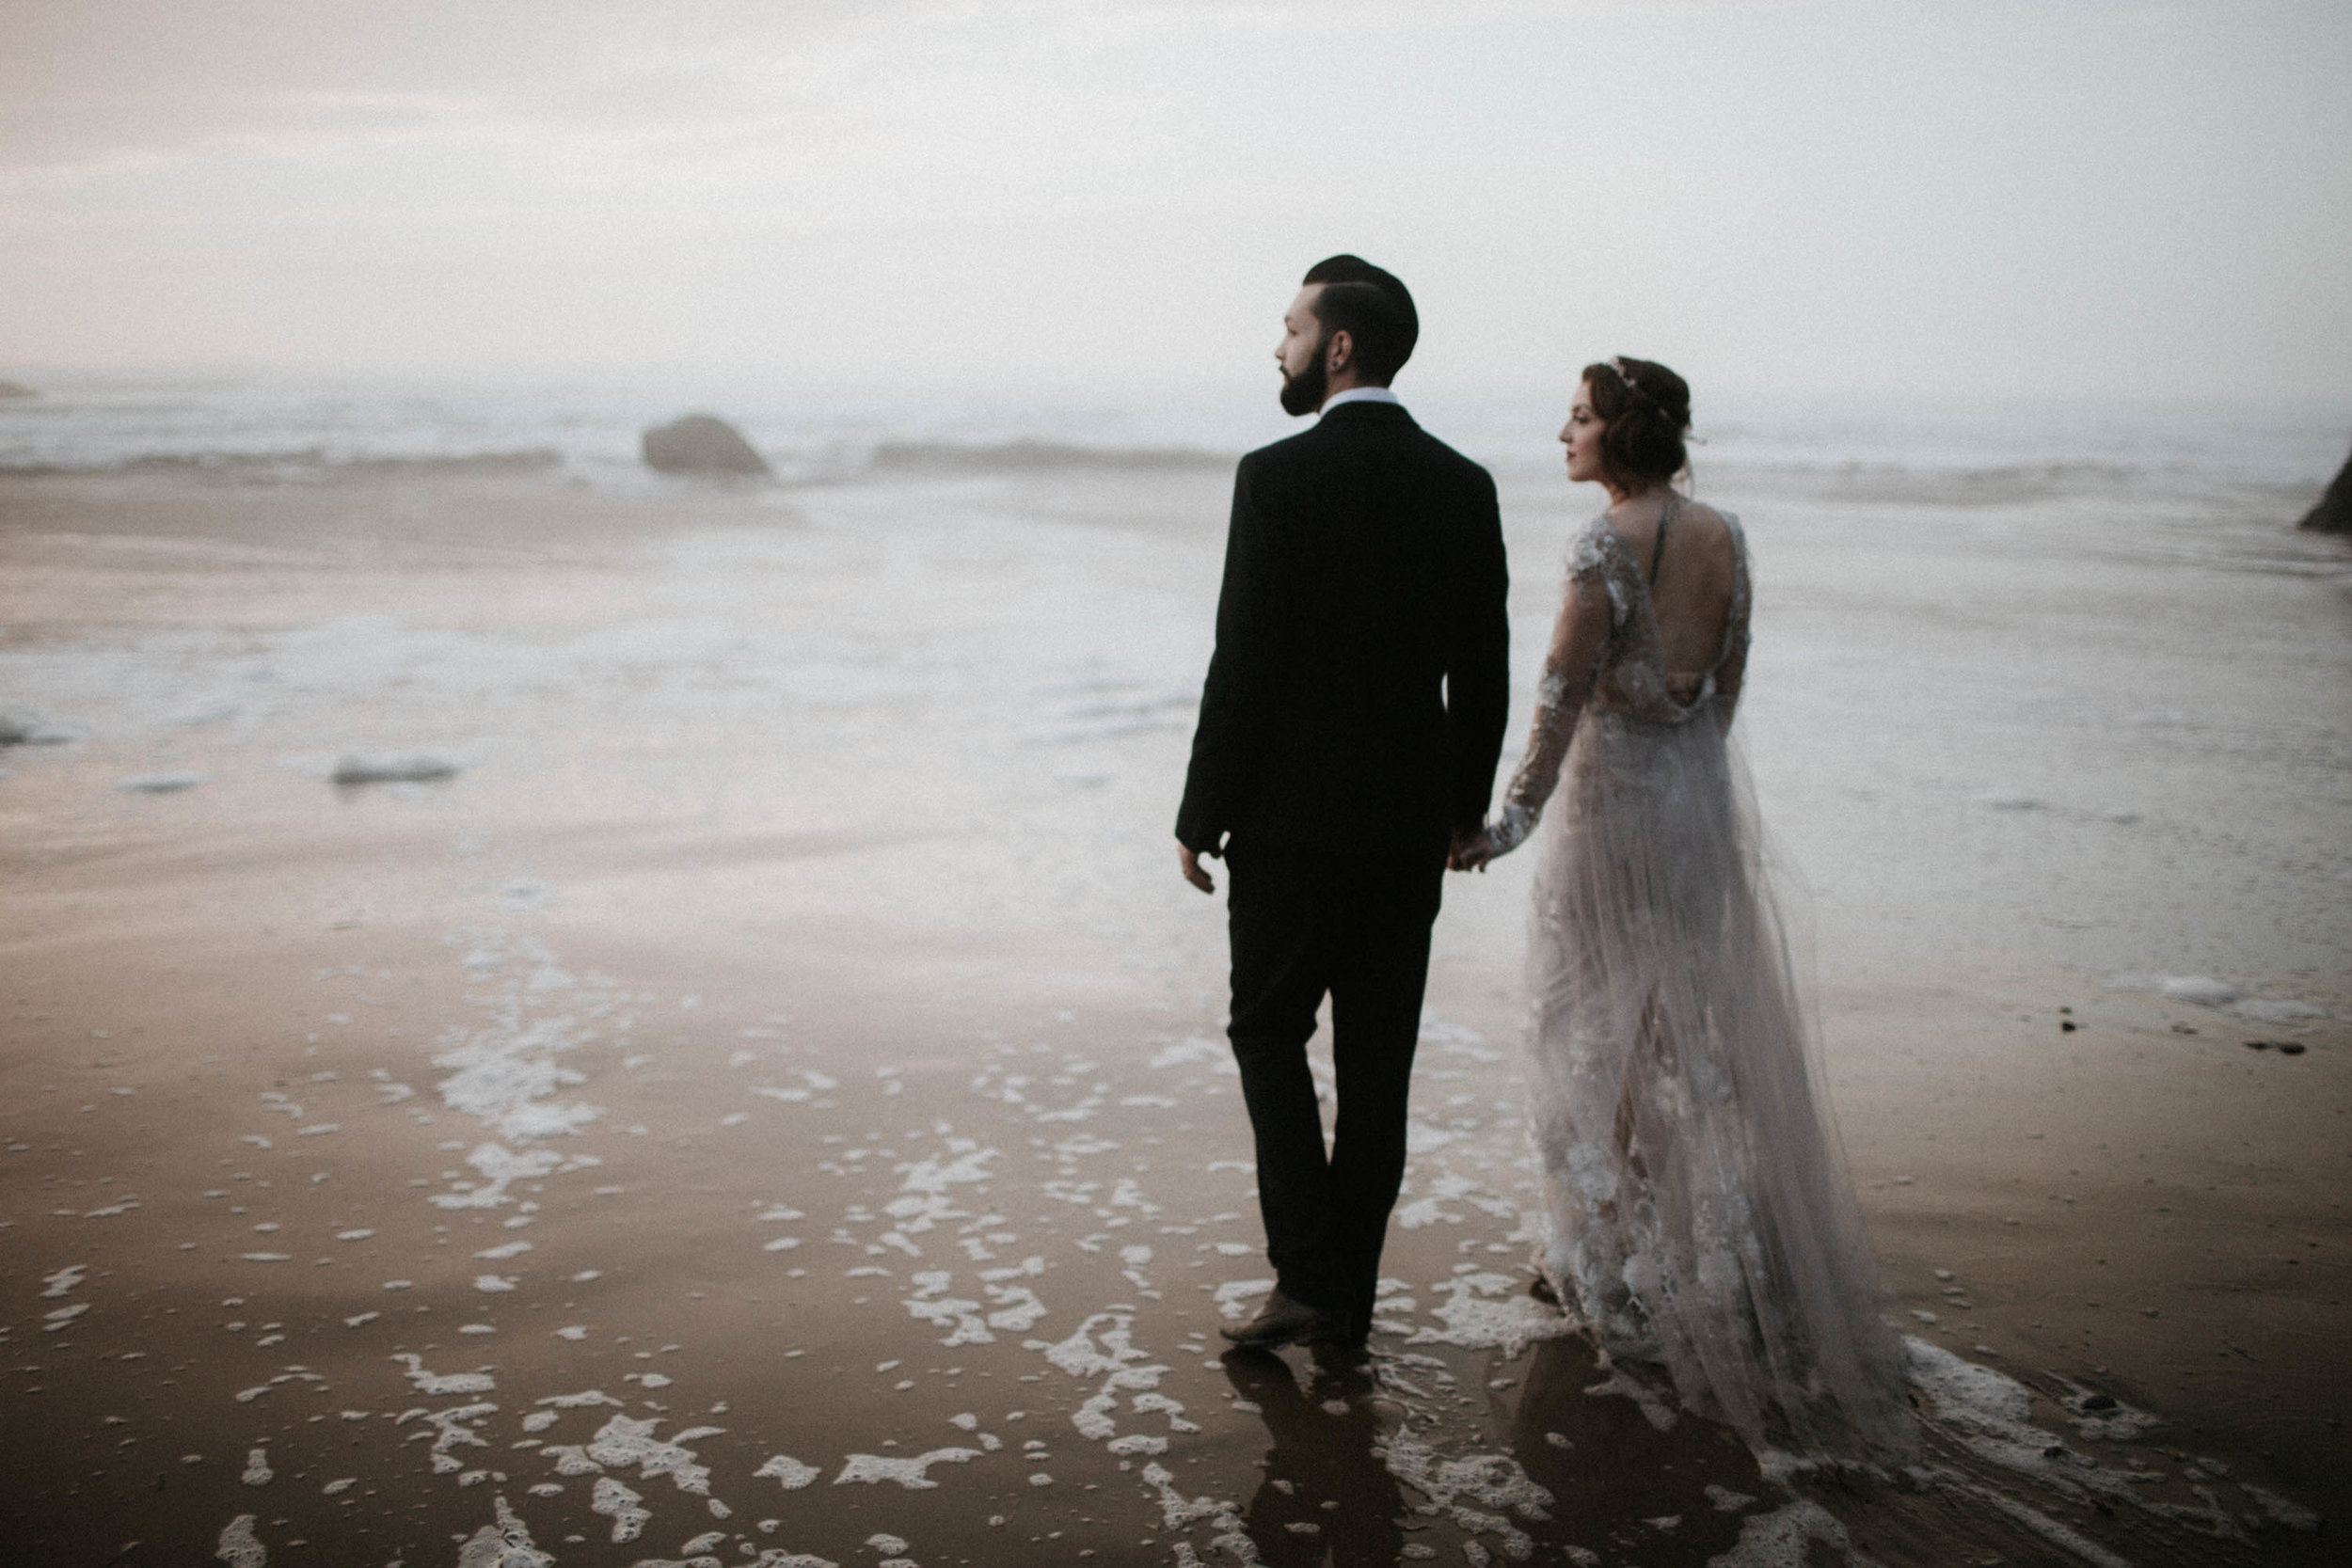 canonbeach_elopment_weddingphotographer-62.jpg